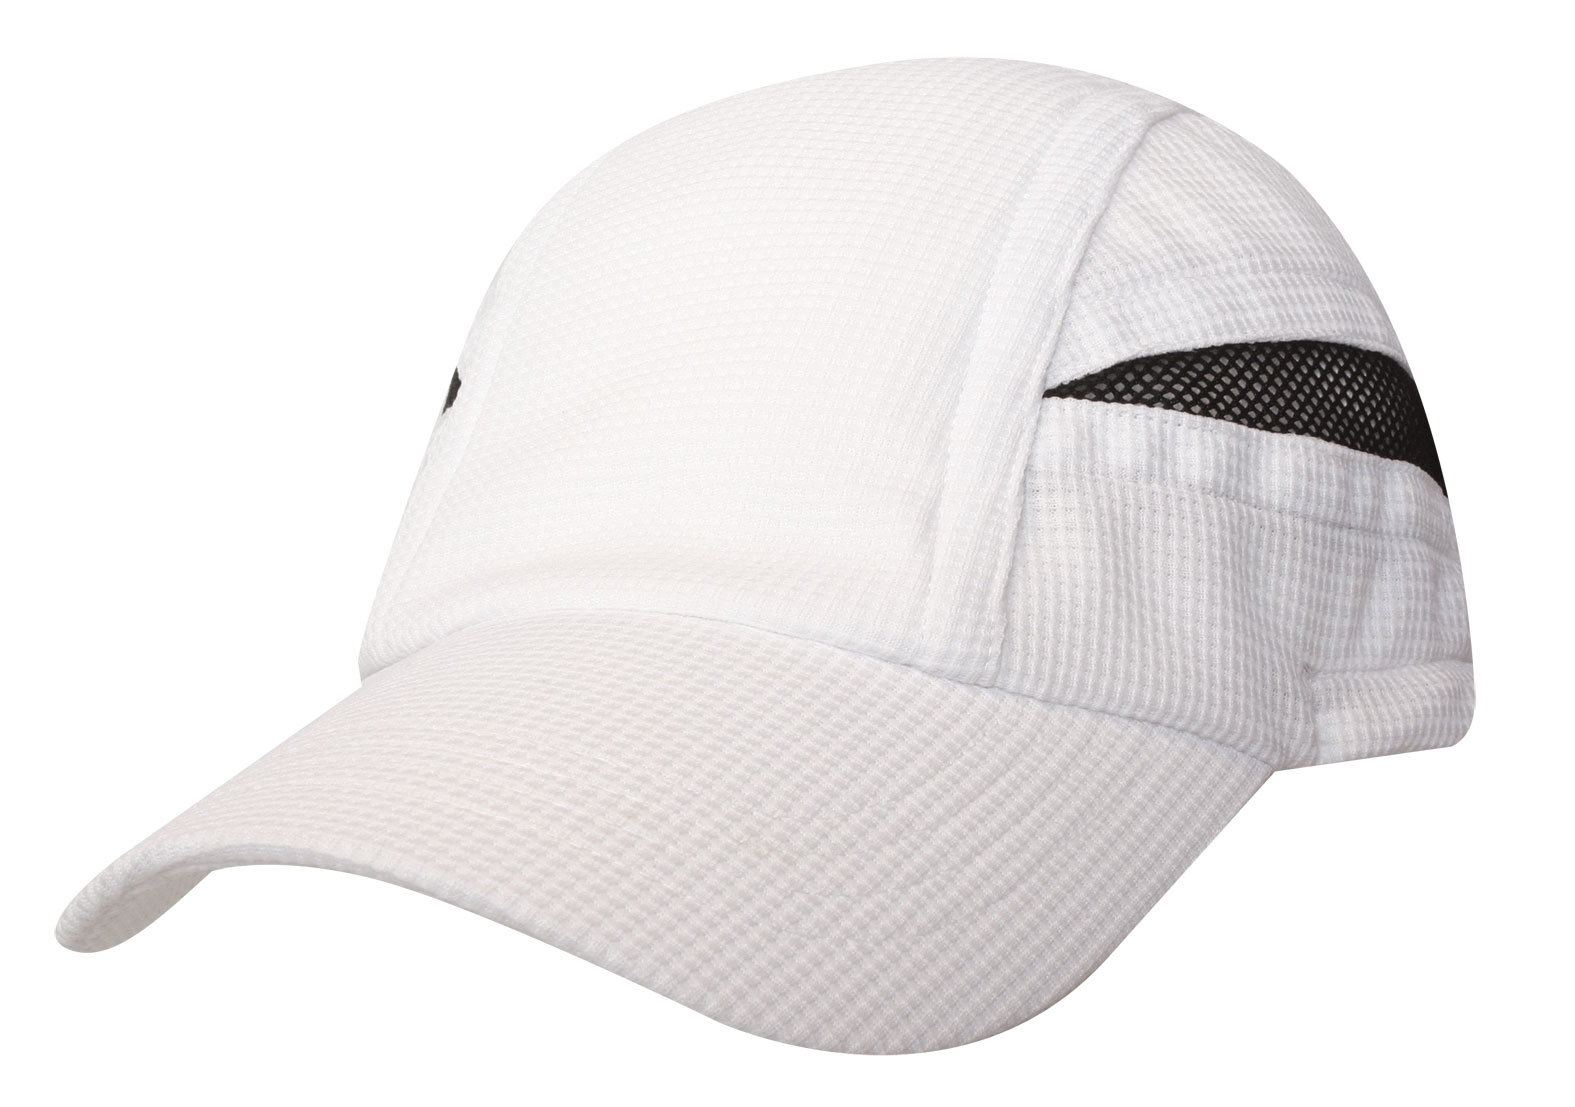 Performance Running Cap With Elastic Tie